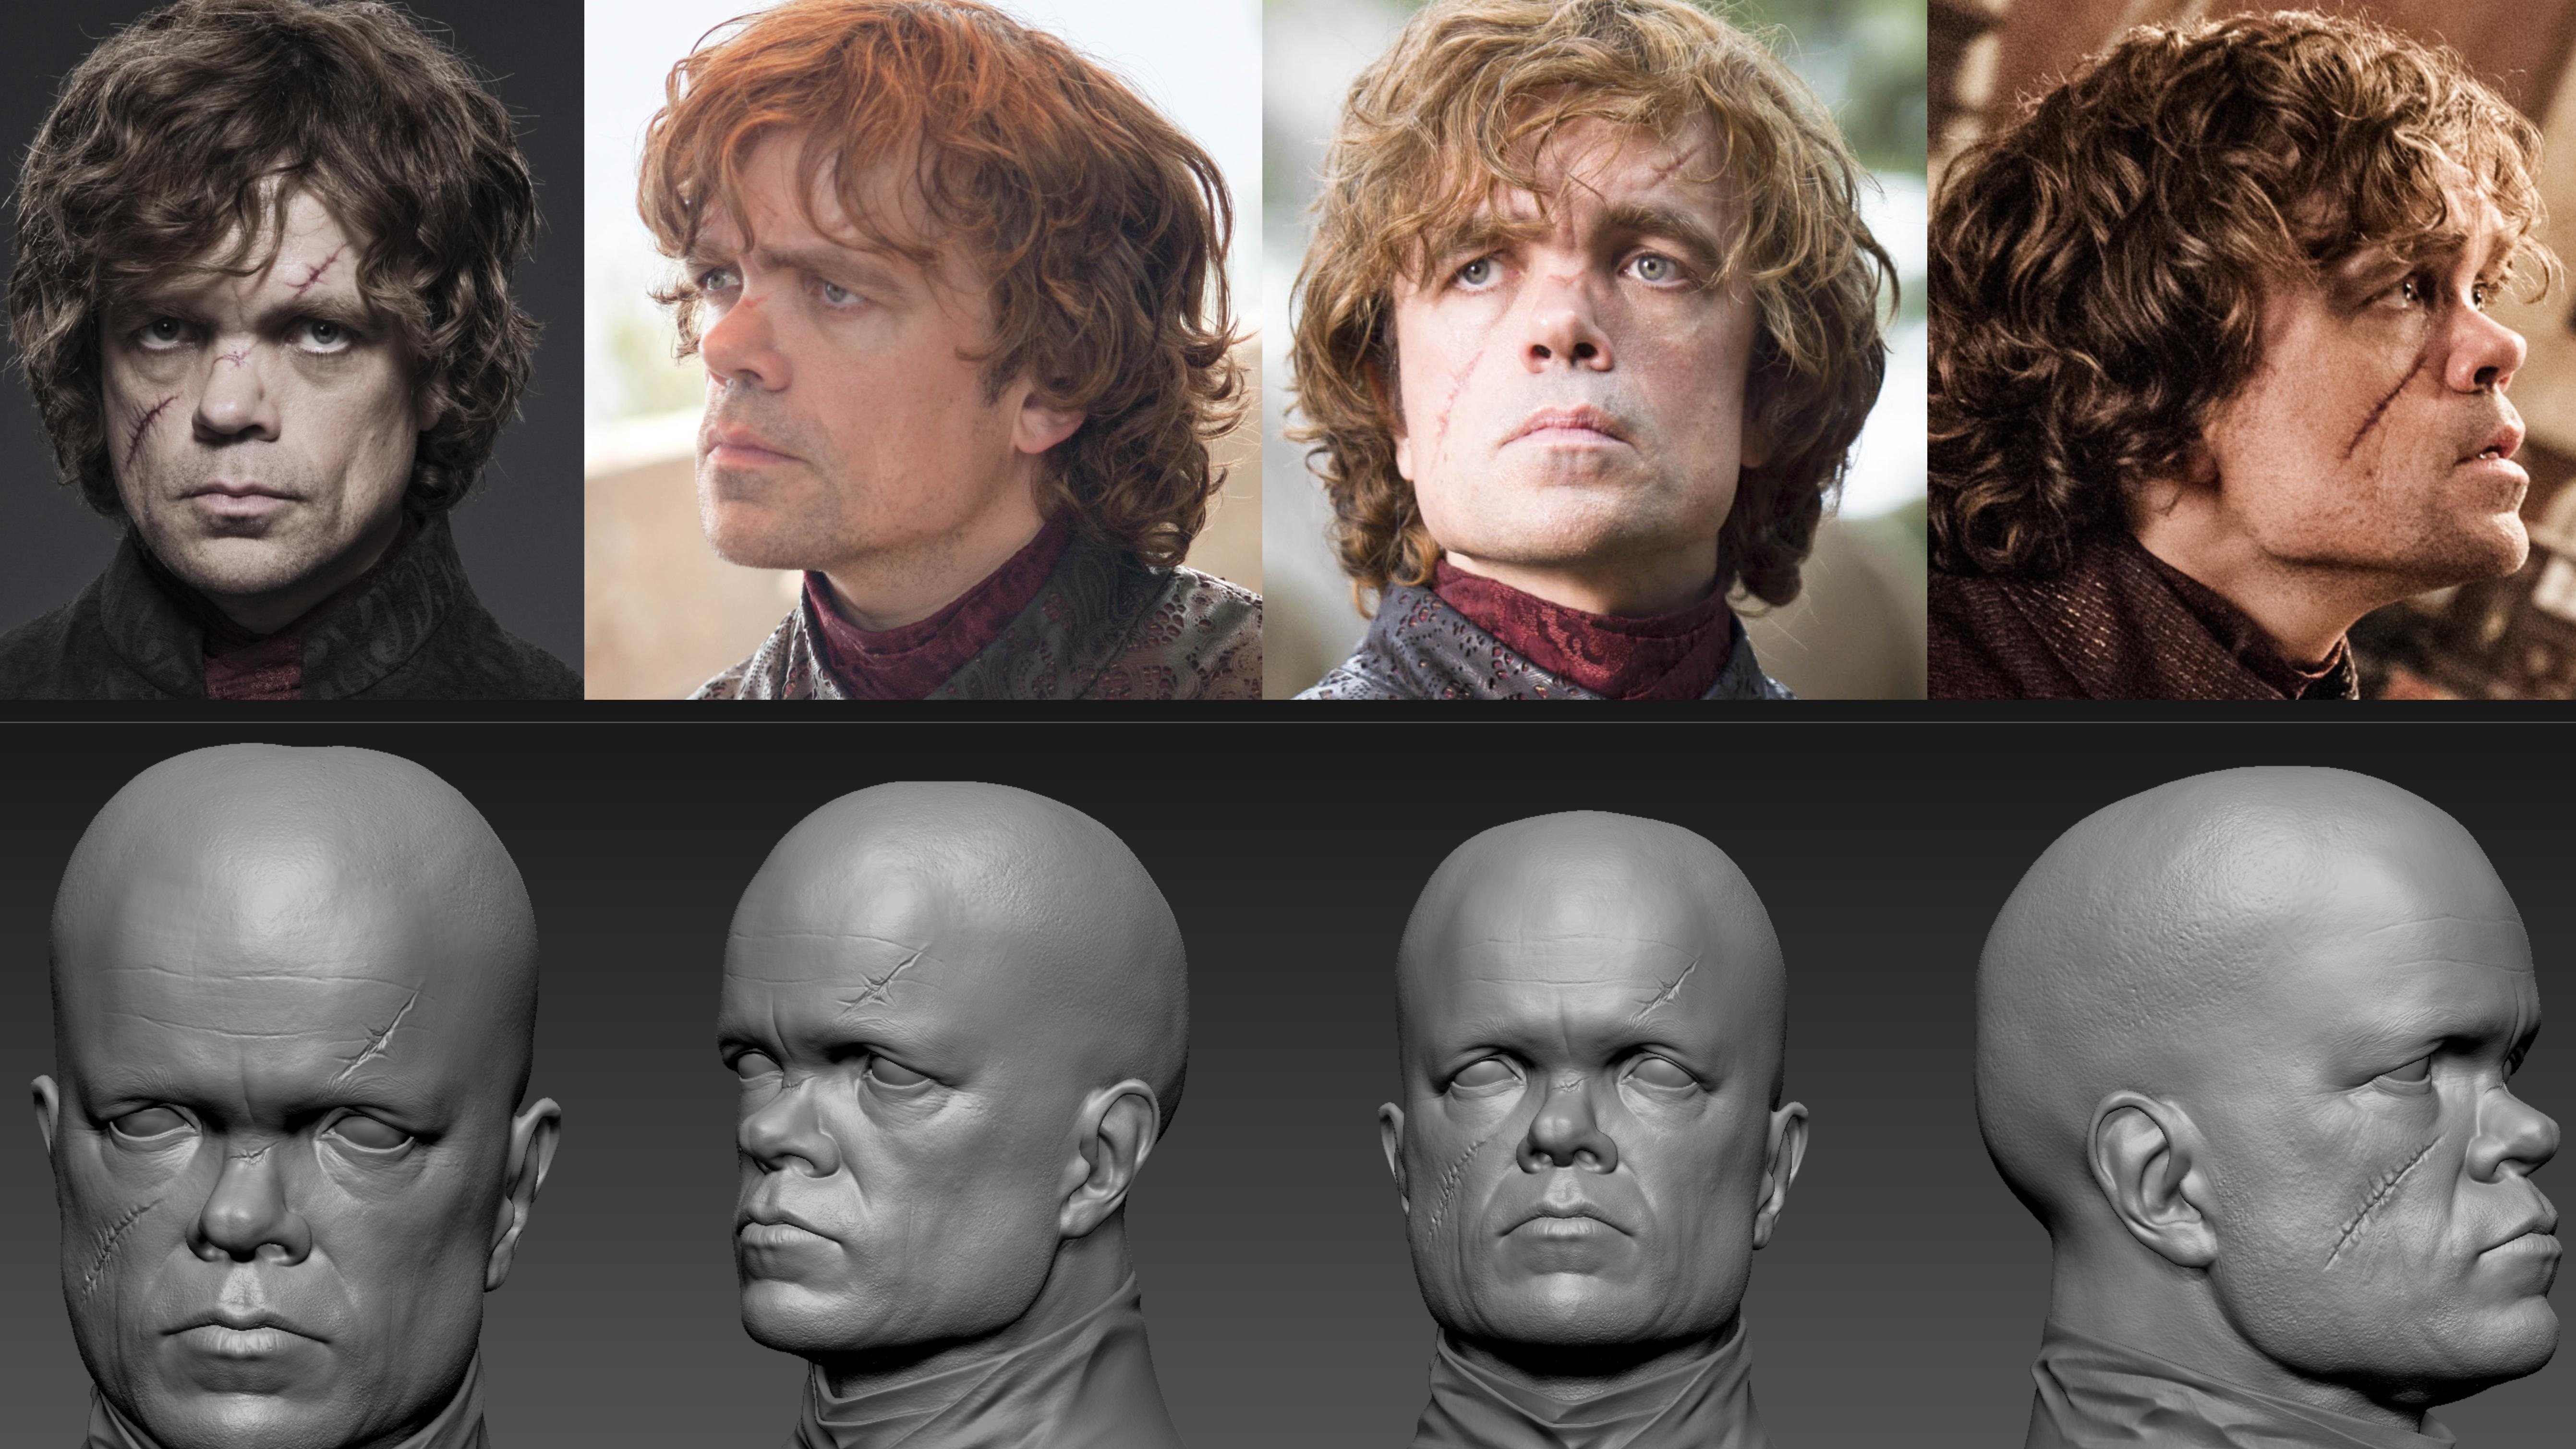 Game of Thrones head sculpts and reference